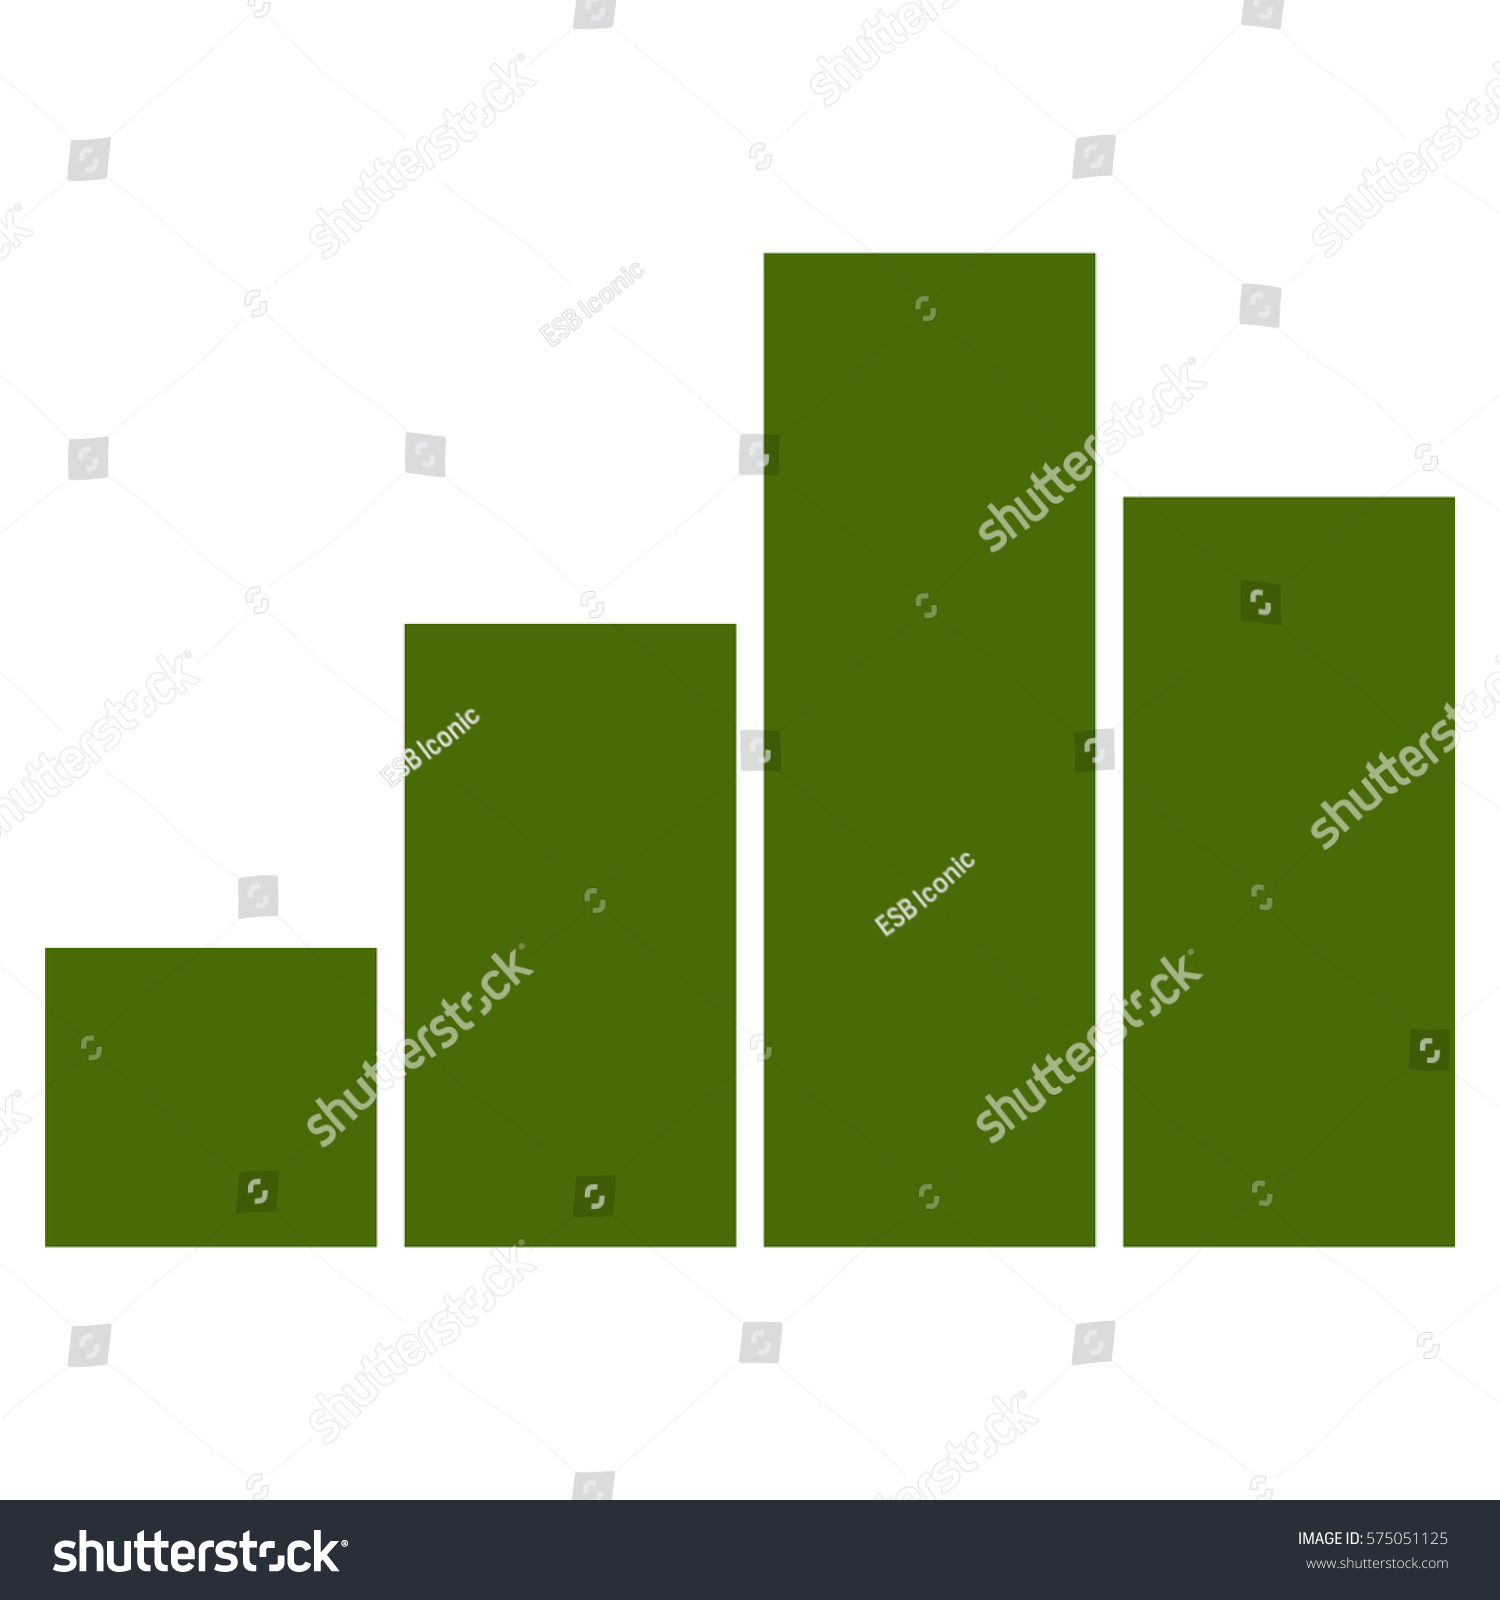 stock vector vector illustration of bar chart in green icon 575051125 swot icon wiring diagrams wiring diagrams flat design letters for th8320r1003 wiring diagrams at fashall.co